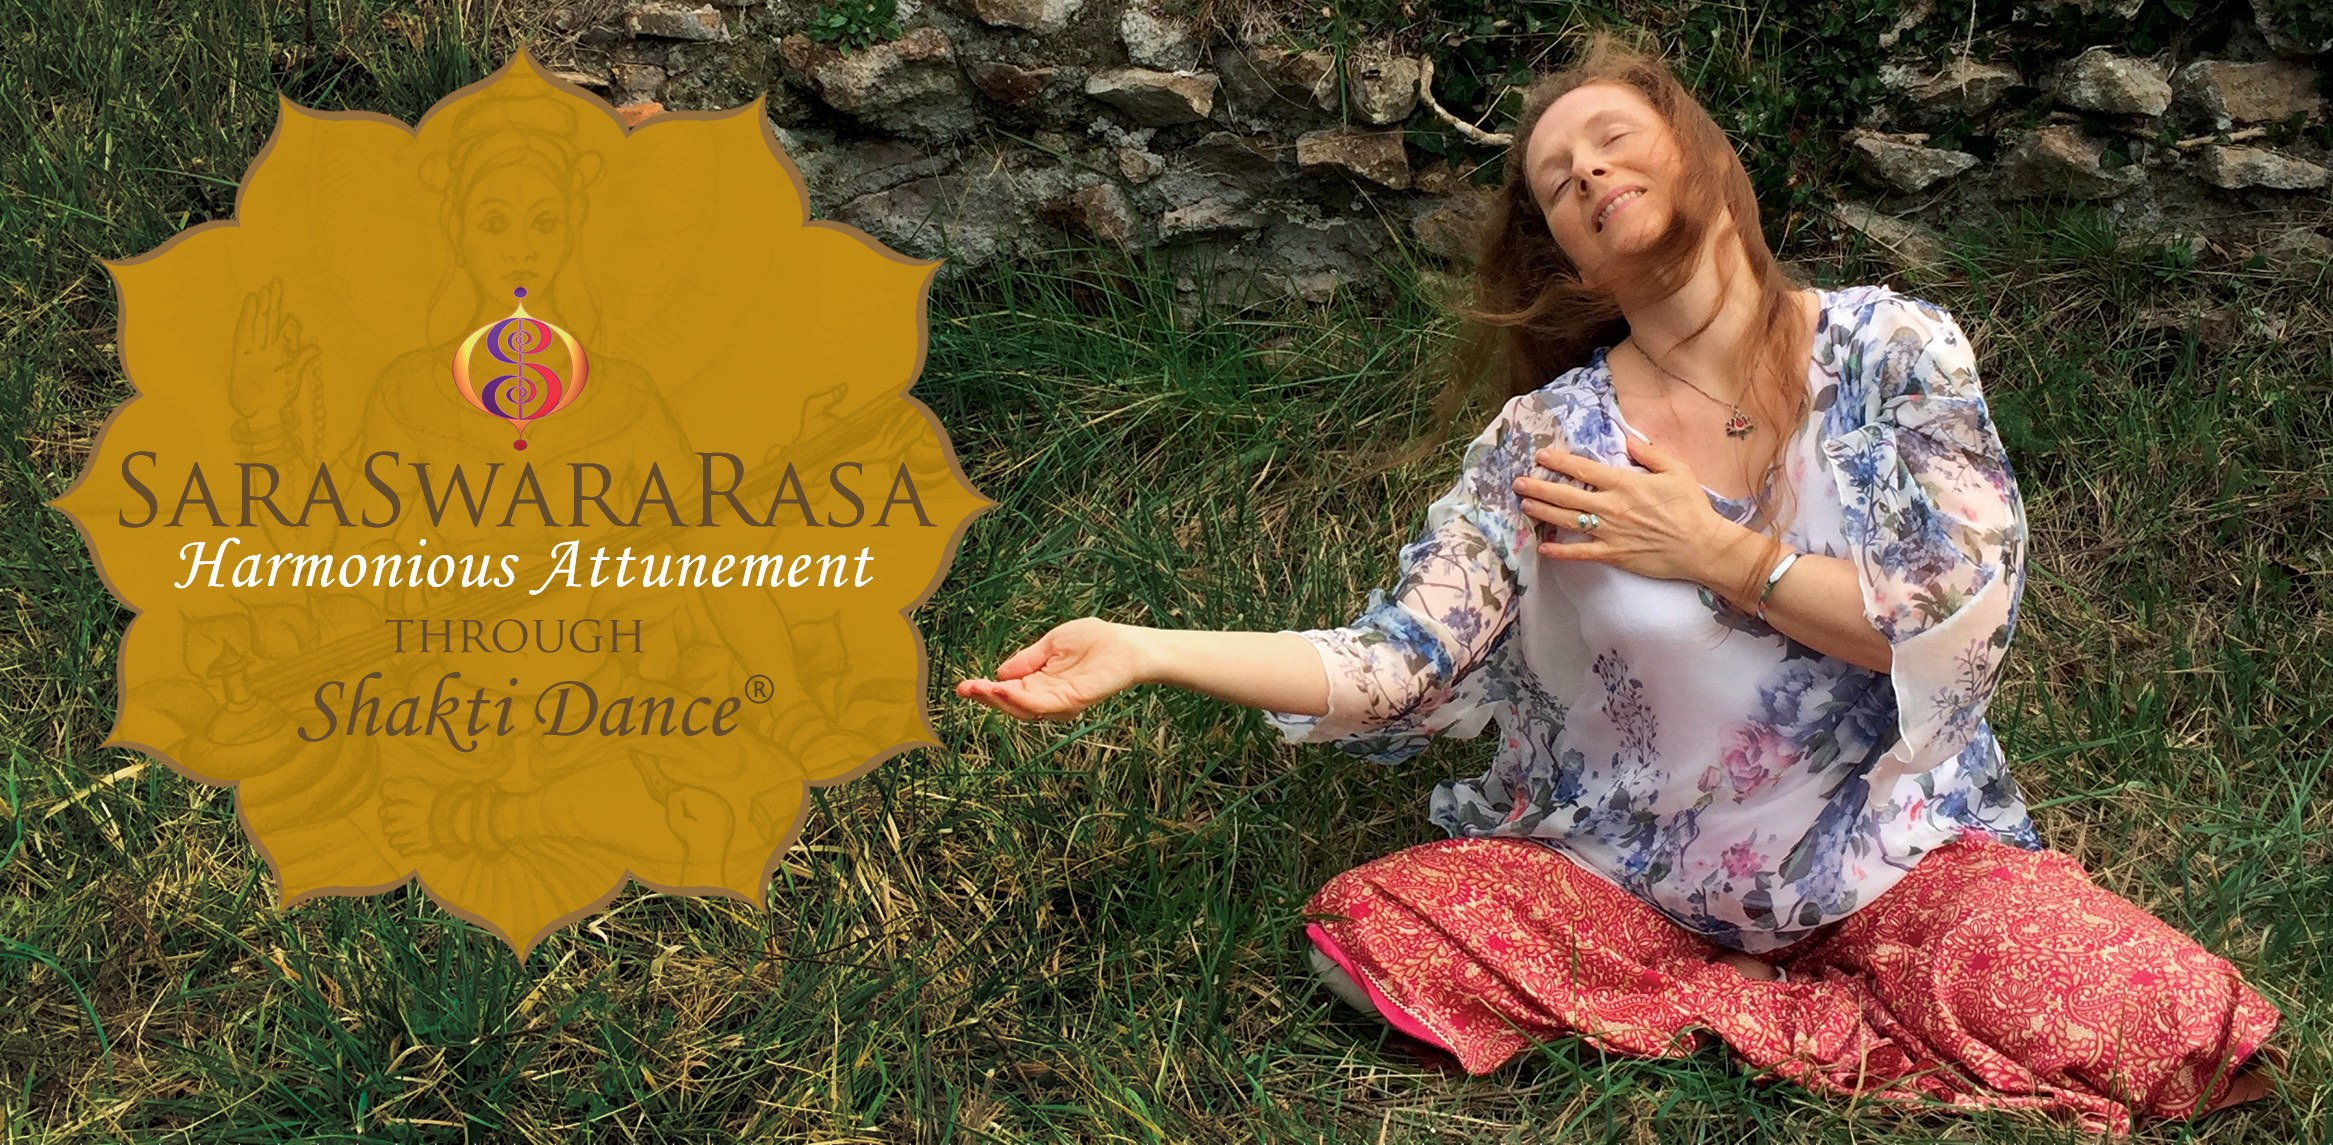 Tickets for Shakti Dance, Intensive - Harmonious Attunement in Miami from BrightStar Live Events